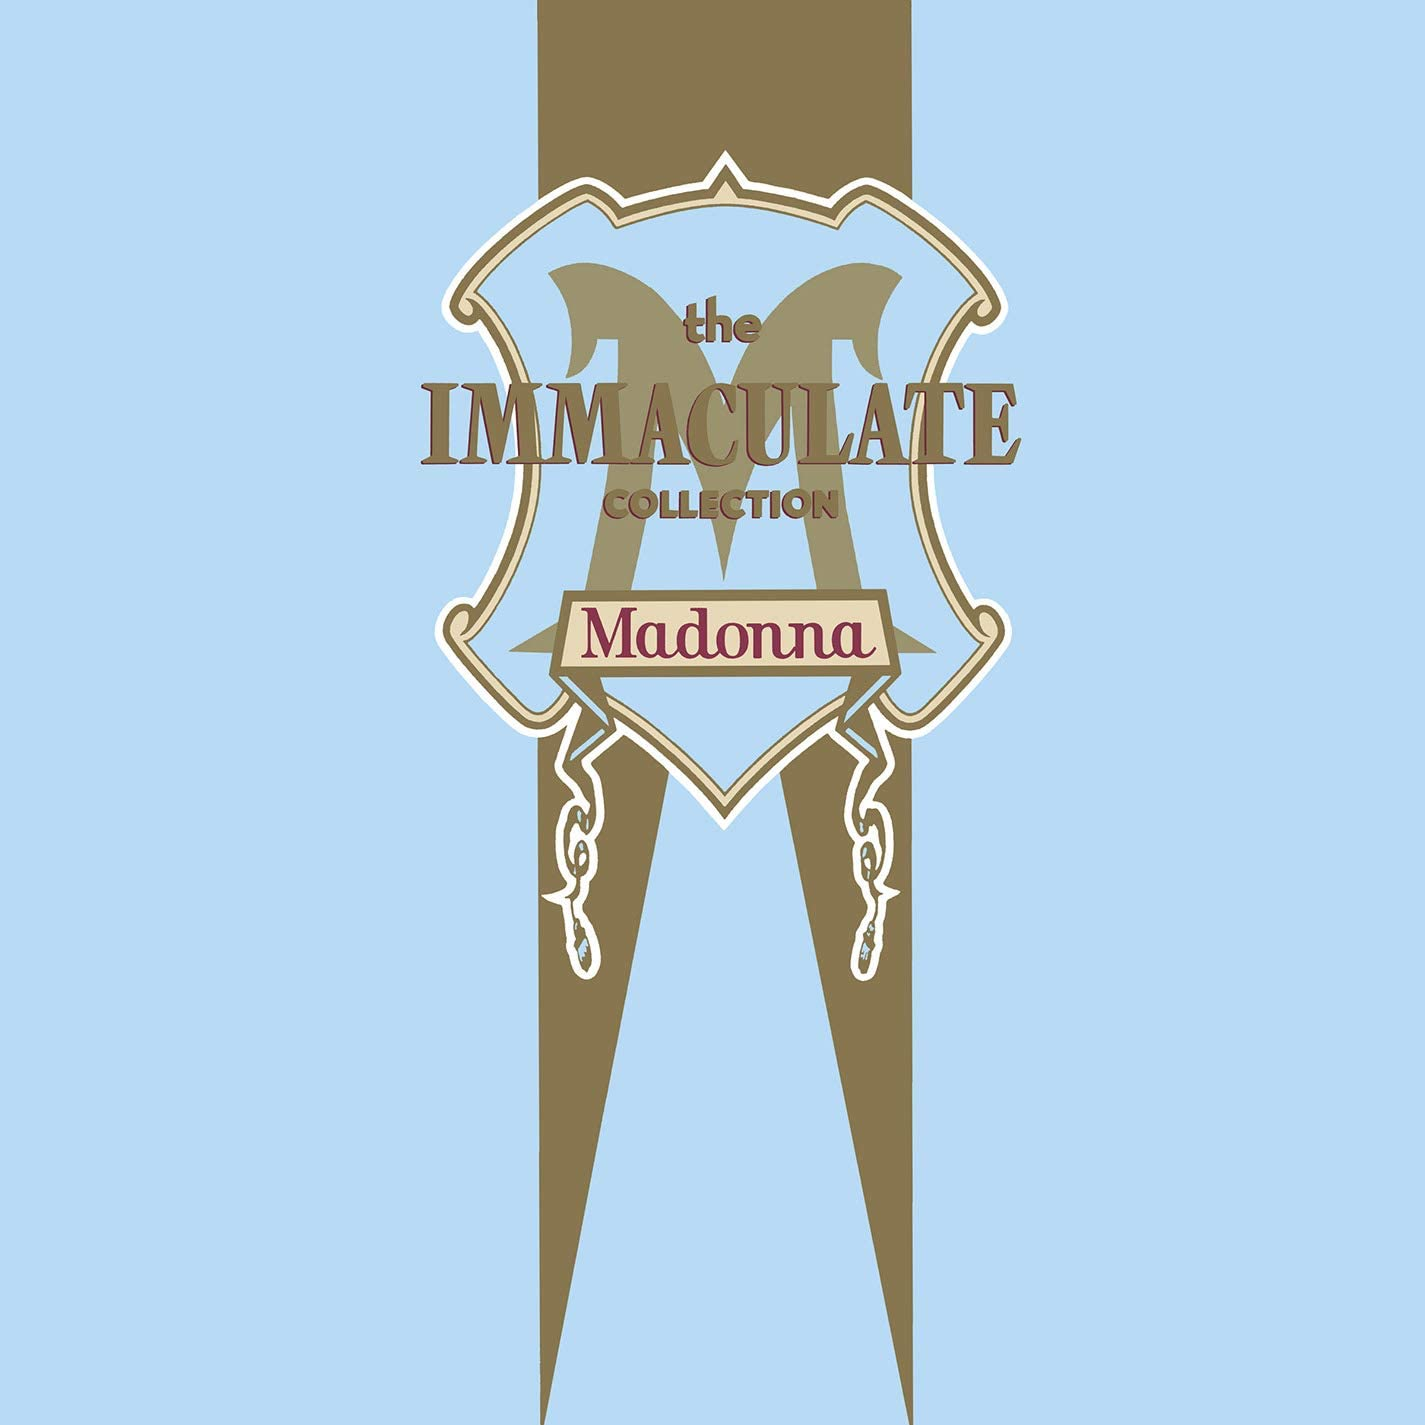 Madonna - The Immaculate Collection (Double Album)